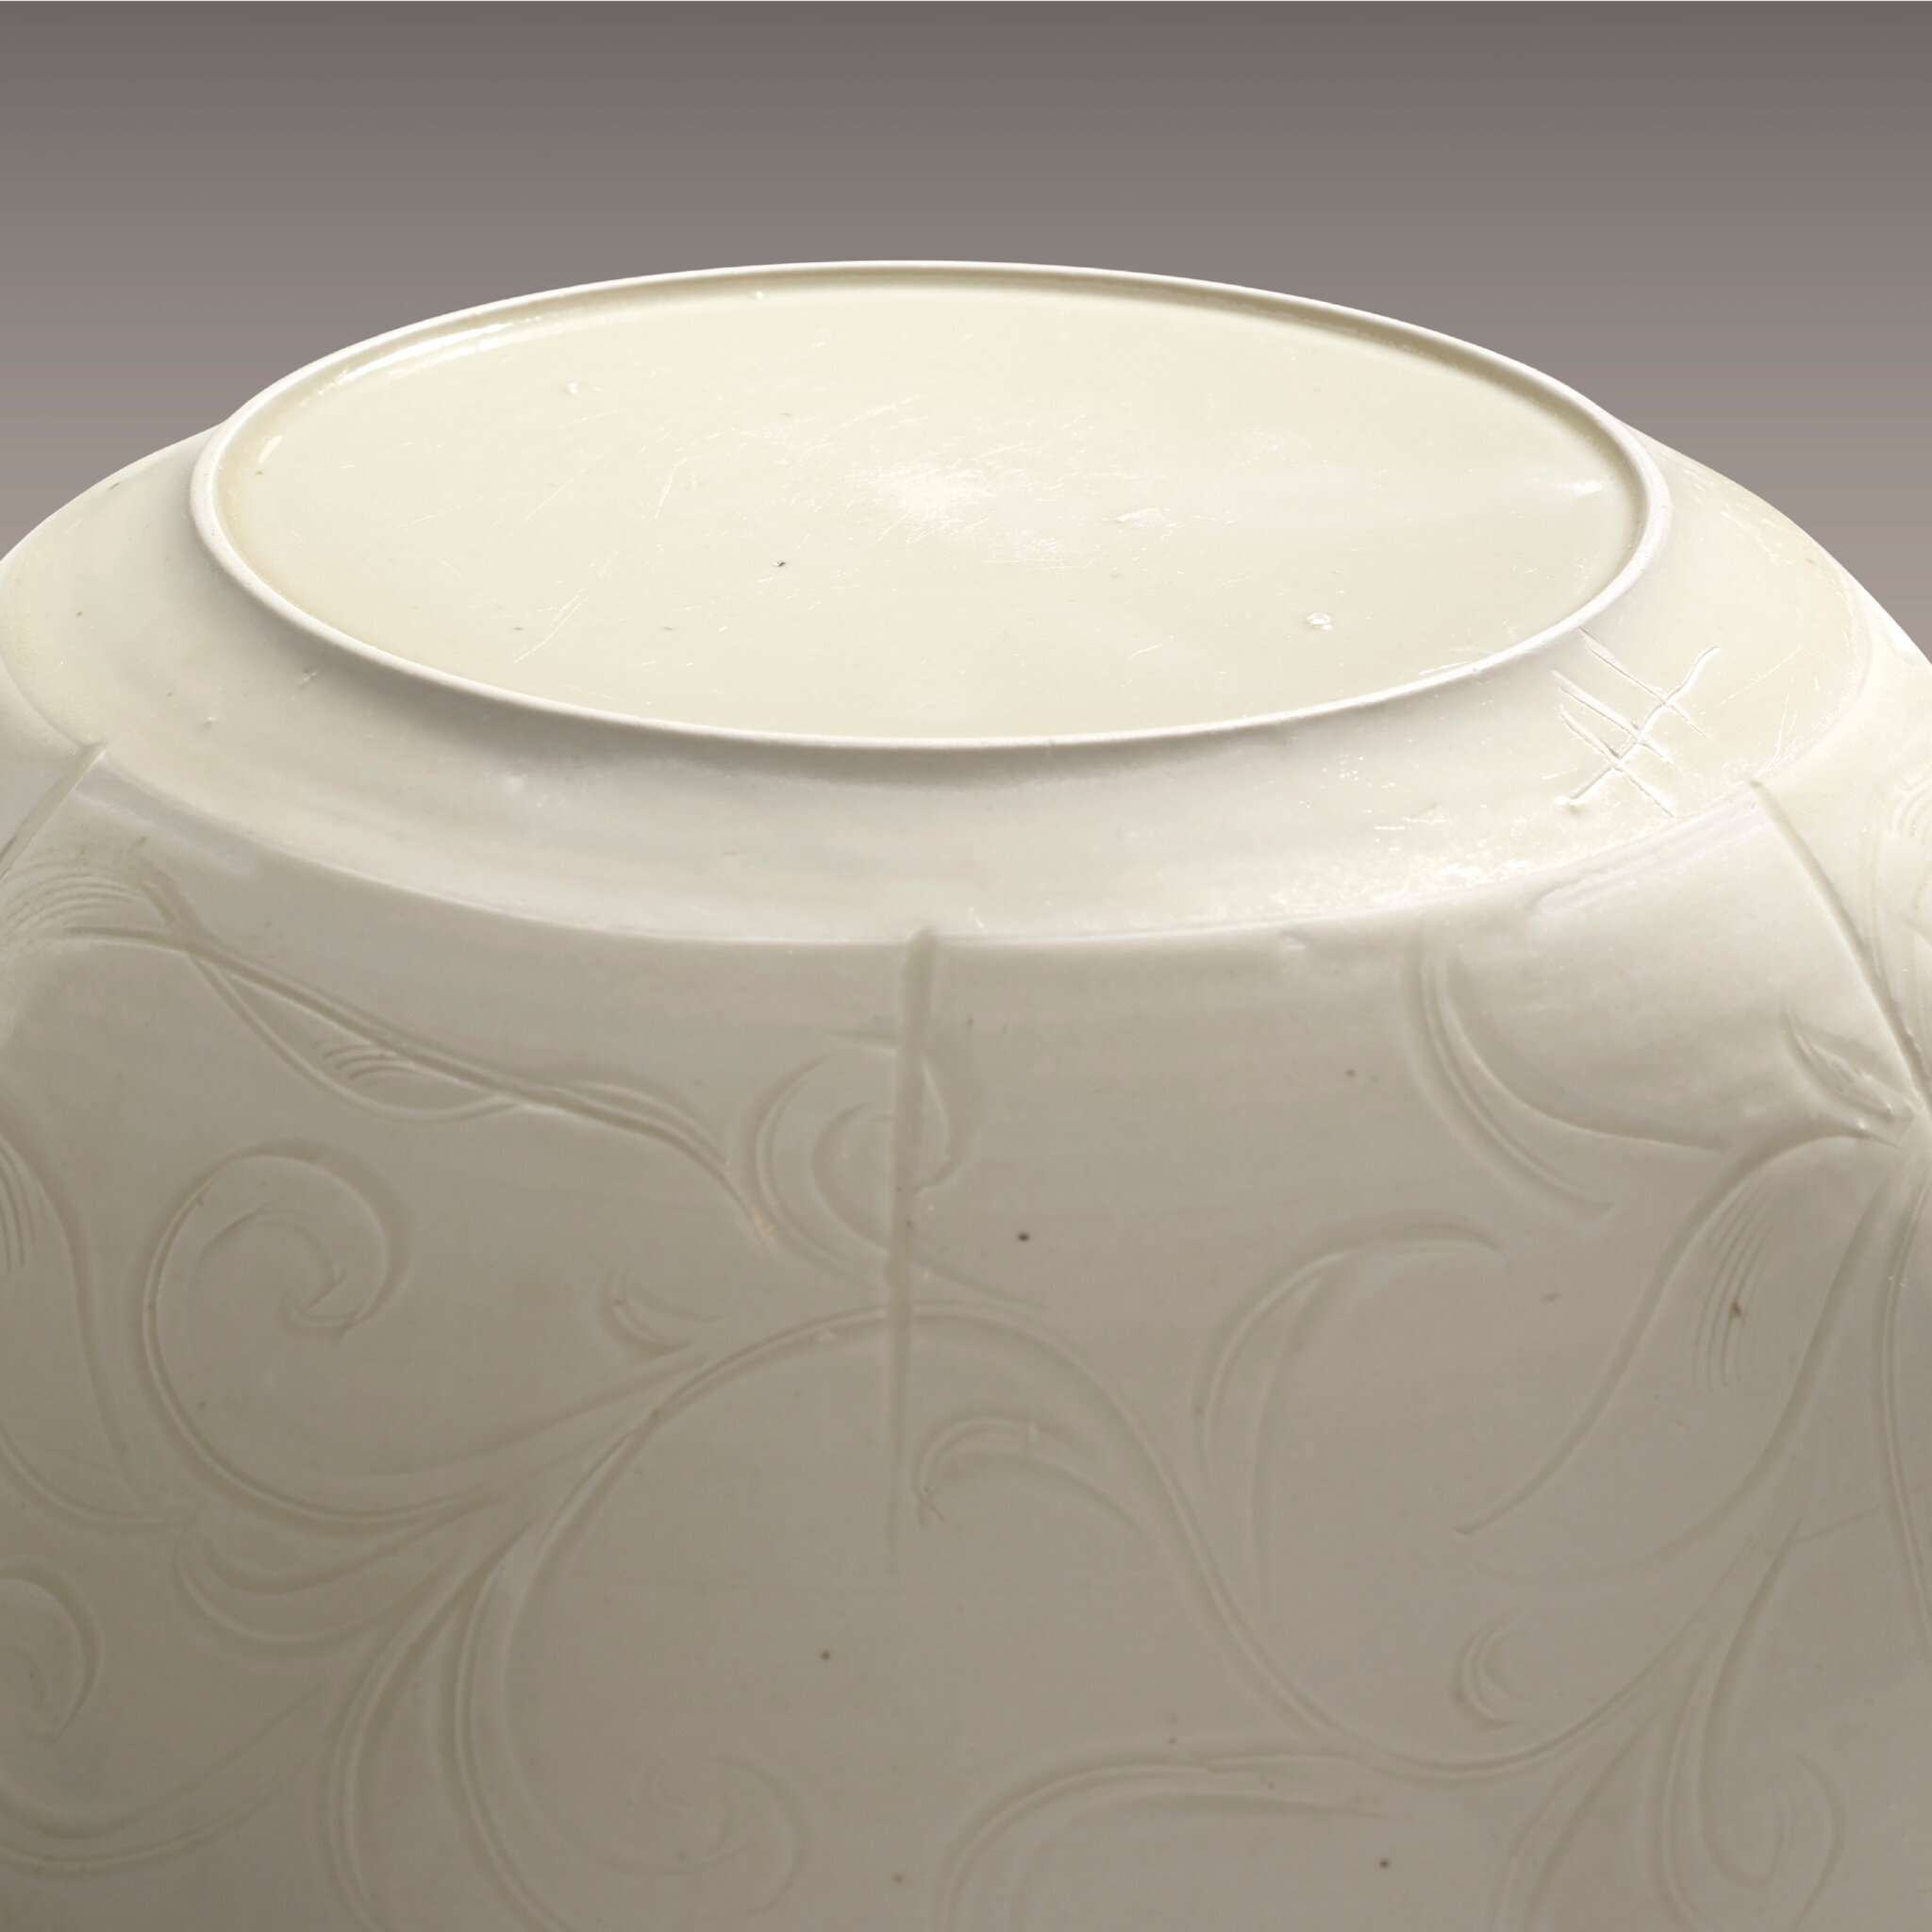 2014_HGK_03323_3212_002(a_very_rare_and_superbly_carved_large_ding_bowl_northern_song_dynasty)